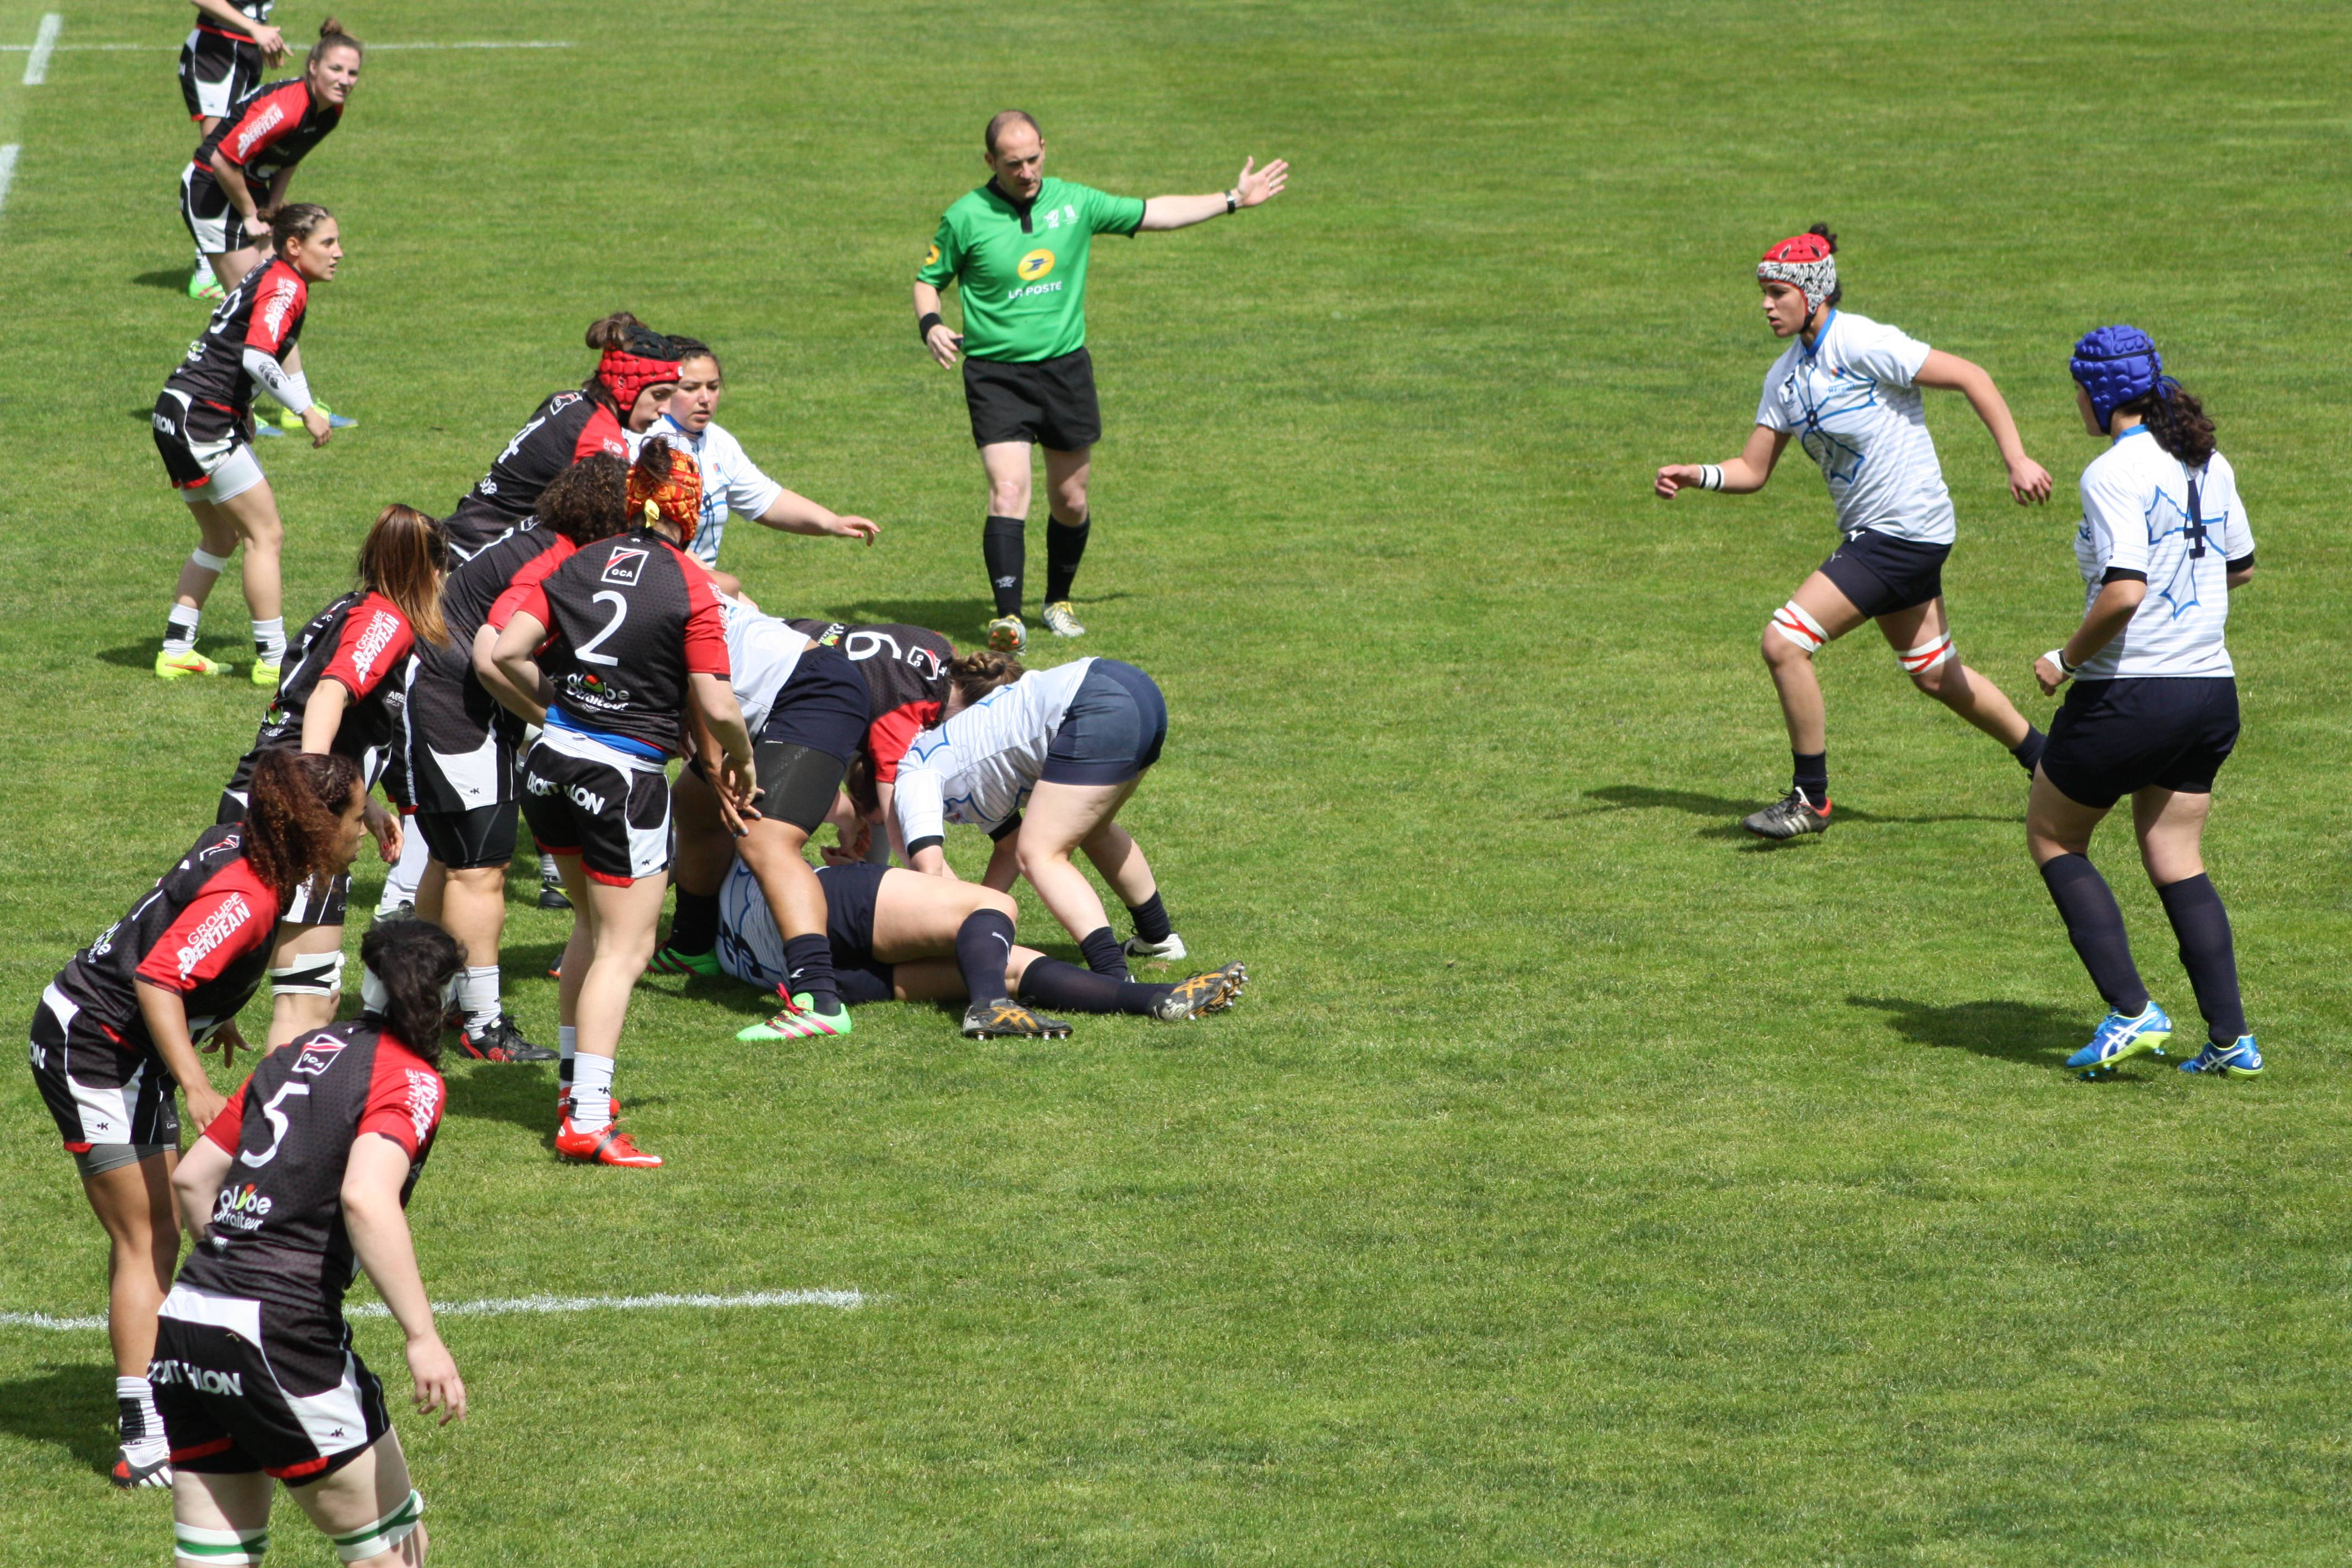 stade toulousain montpellier rugbyamateur (1)